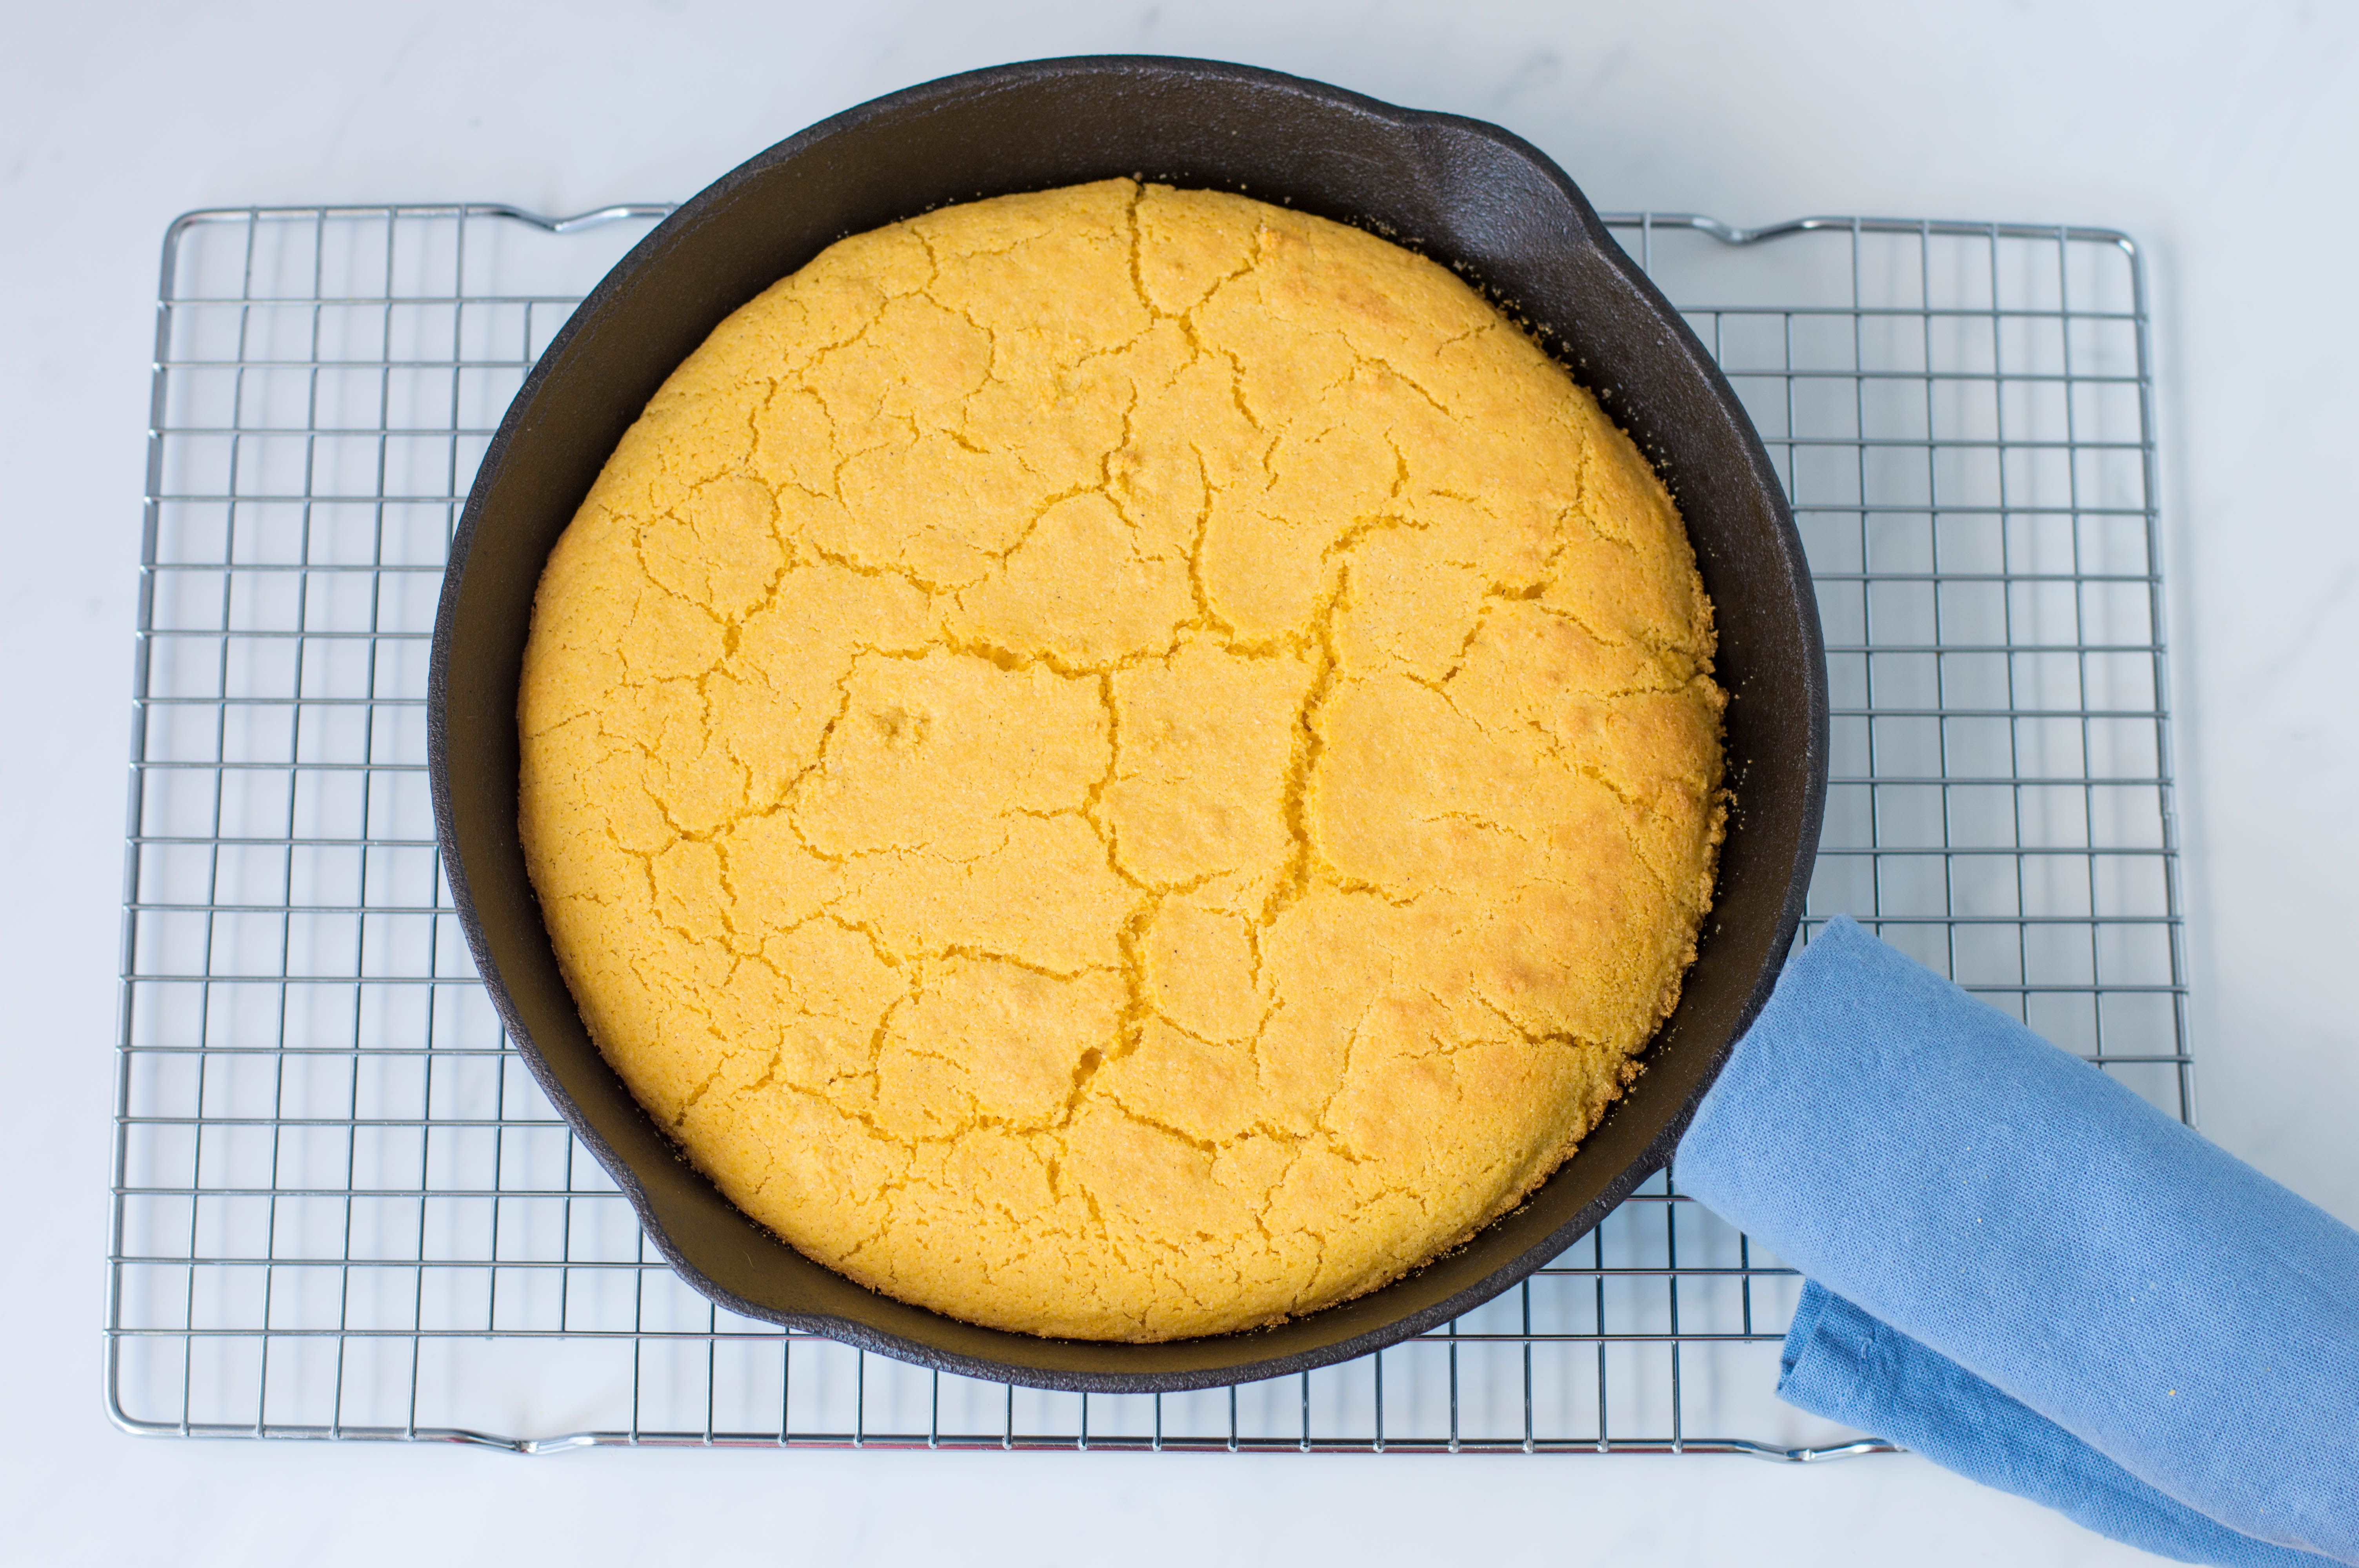 return skillet to oven and bake